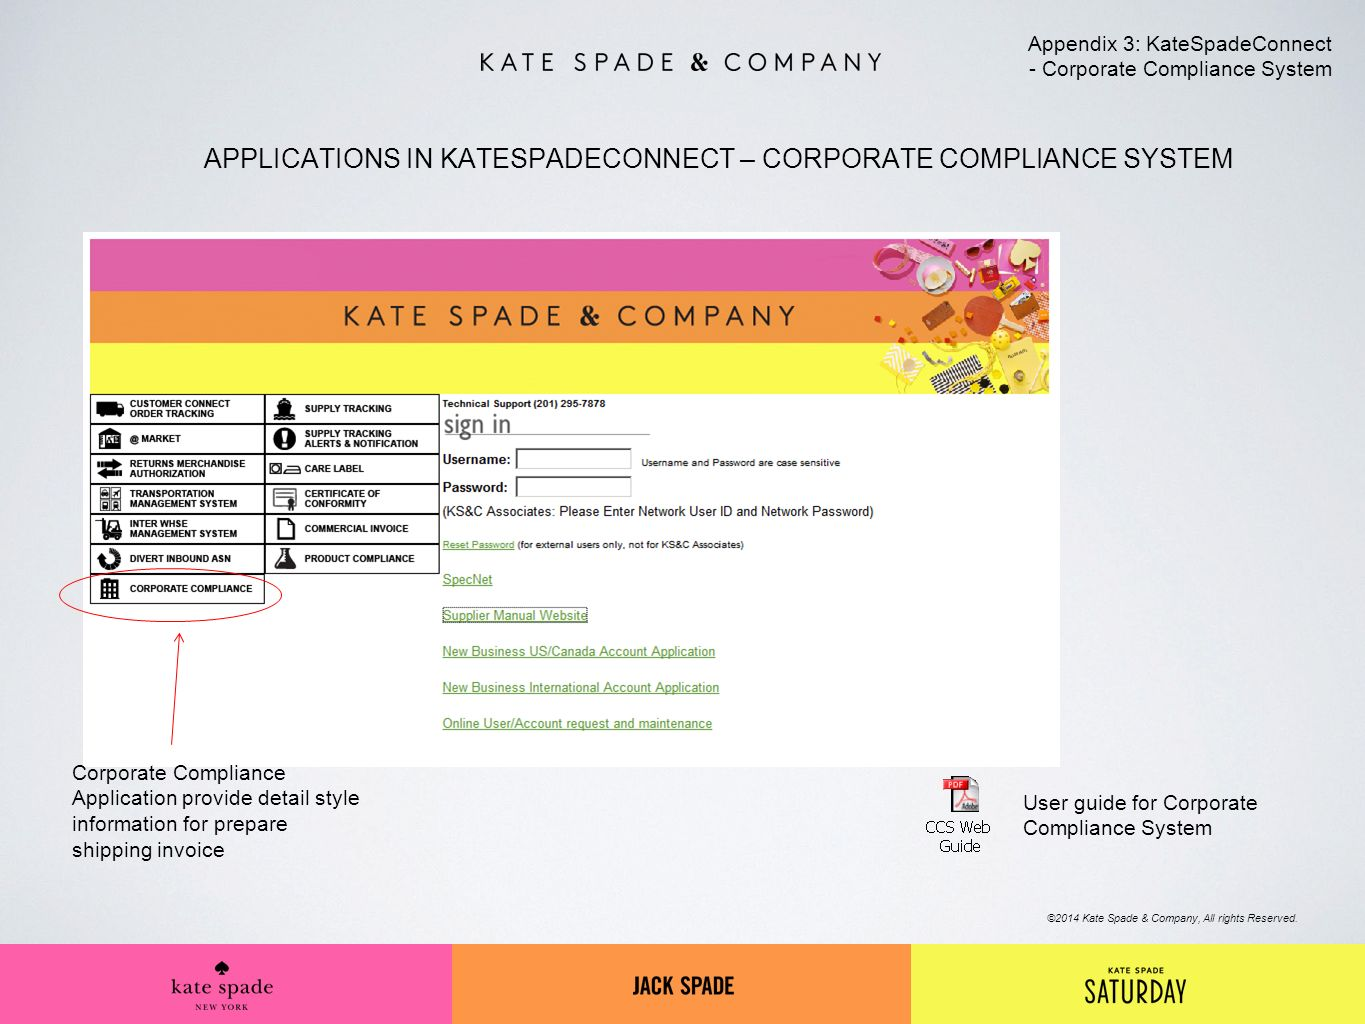 What Is Edi Invoicing Excel  Kate Spade  Company All Rights Reserved  Ppt Download Invoice Forms Online Excel with Toyota Highlander Invoice Price Word   Kate Spade  Company All Rights Reserved Corporate Compliance  Application Provide Detail Style Information For Prepare Shipping Invoice   What Is Gross Receipt Word